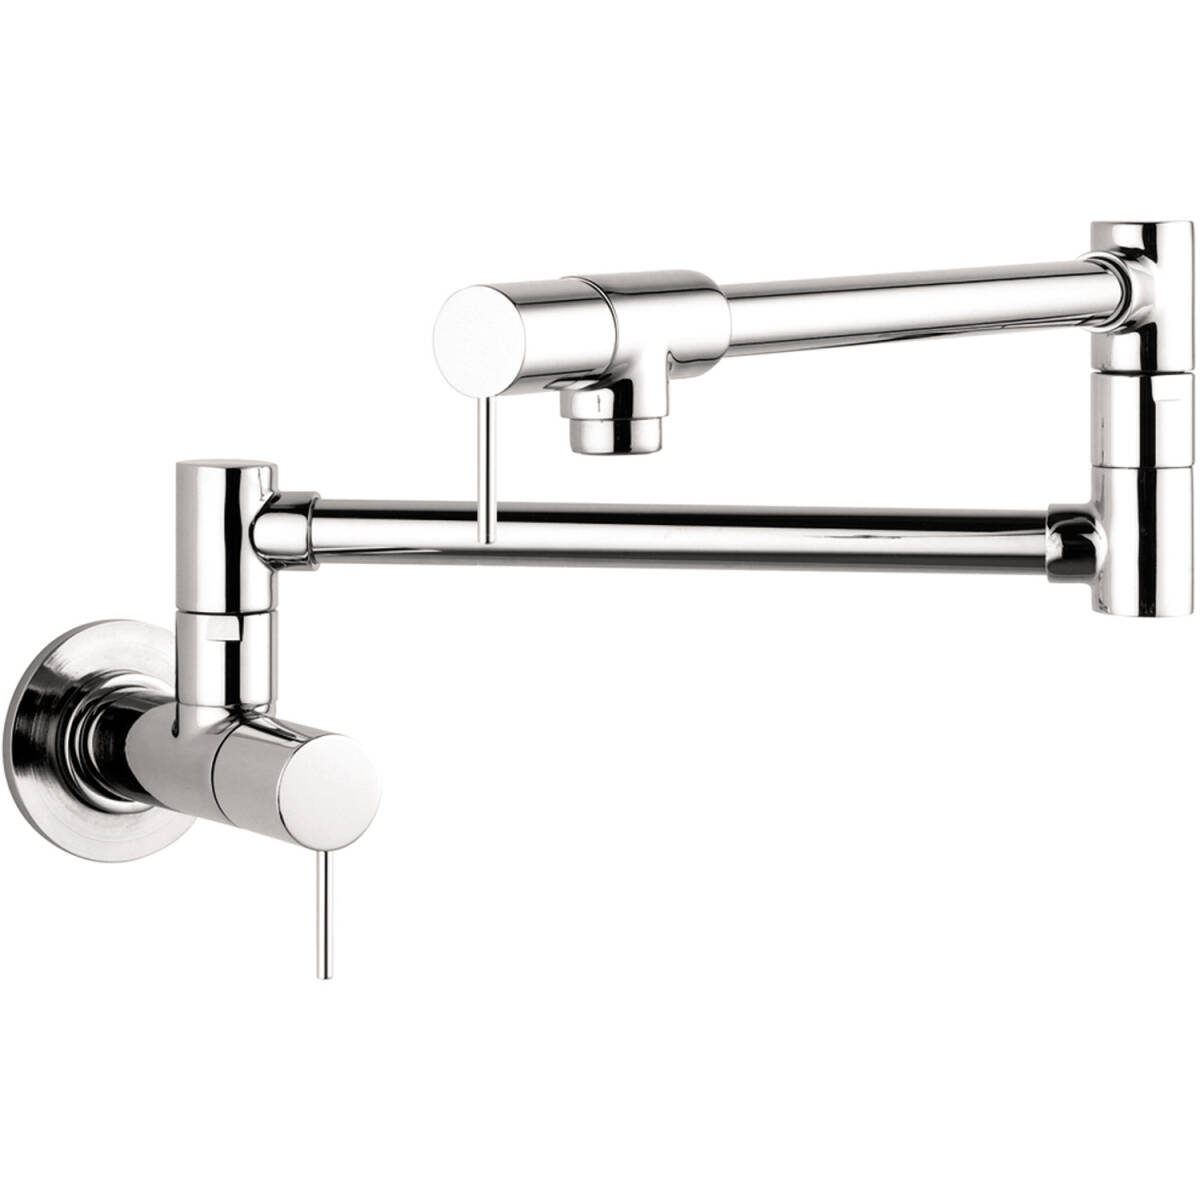 Single lever kitchen mixer wall-mounted, Chrome, 10859001